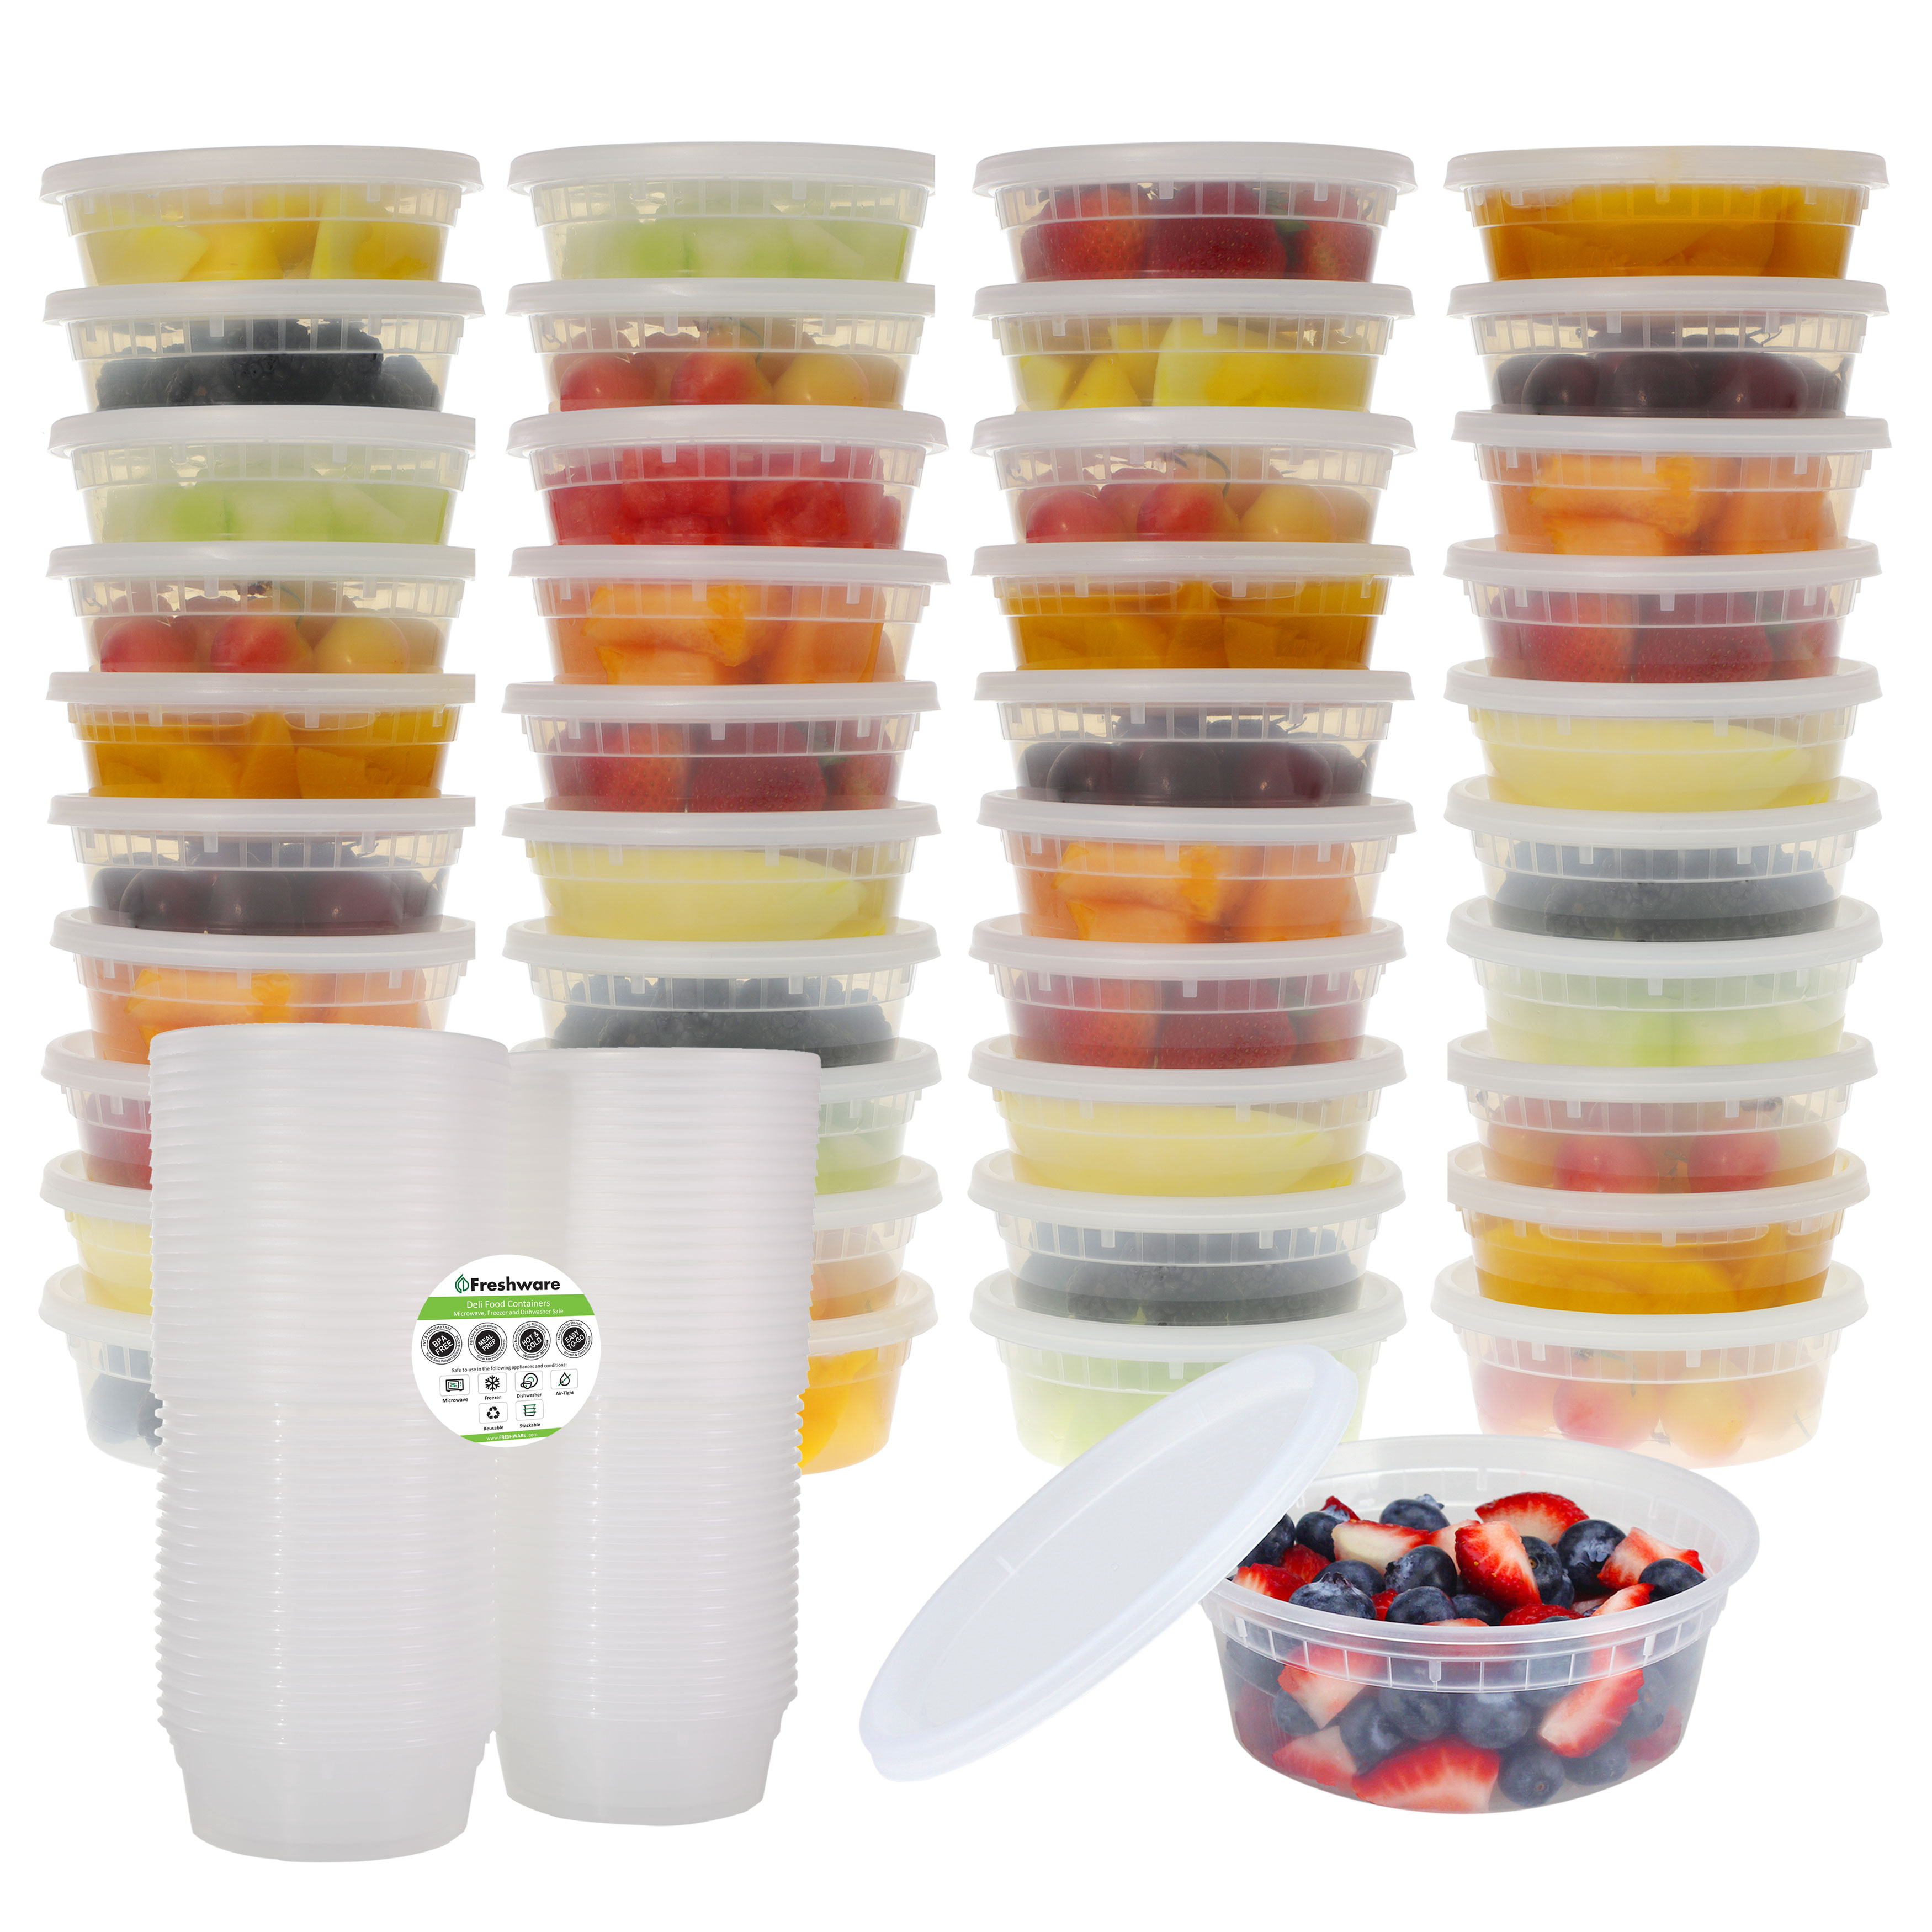 Freshware Plastic Containers with Lids, 8oz, 40-Pack, YH-S8X40